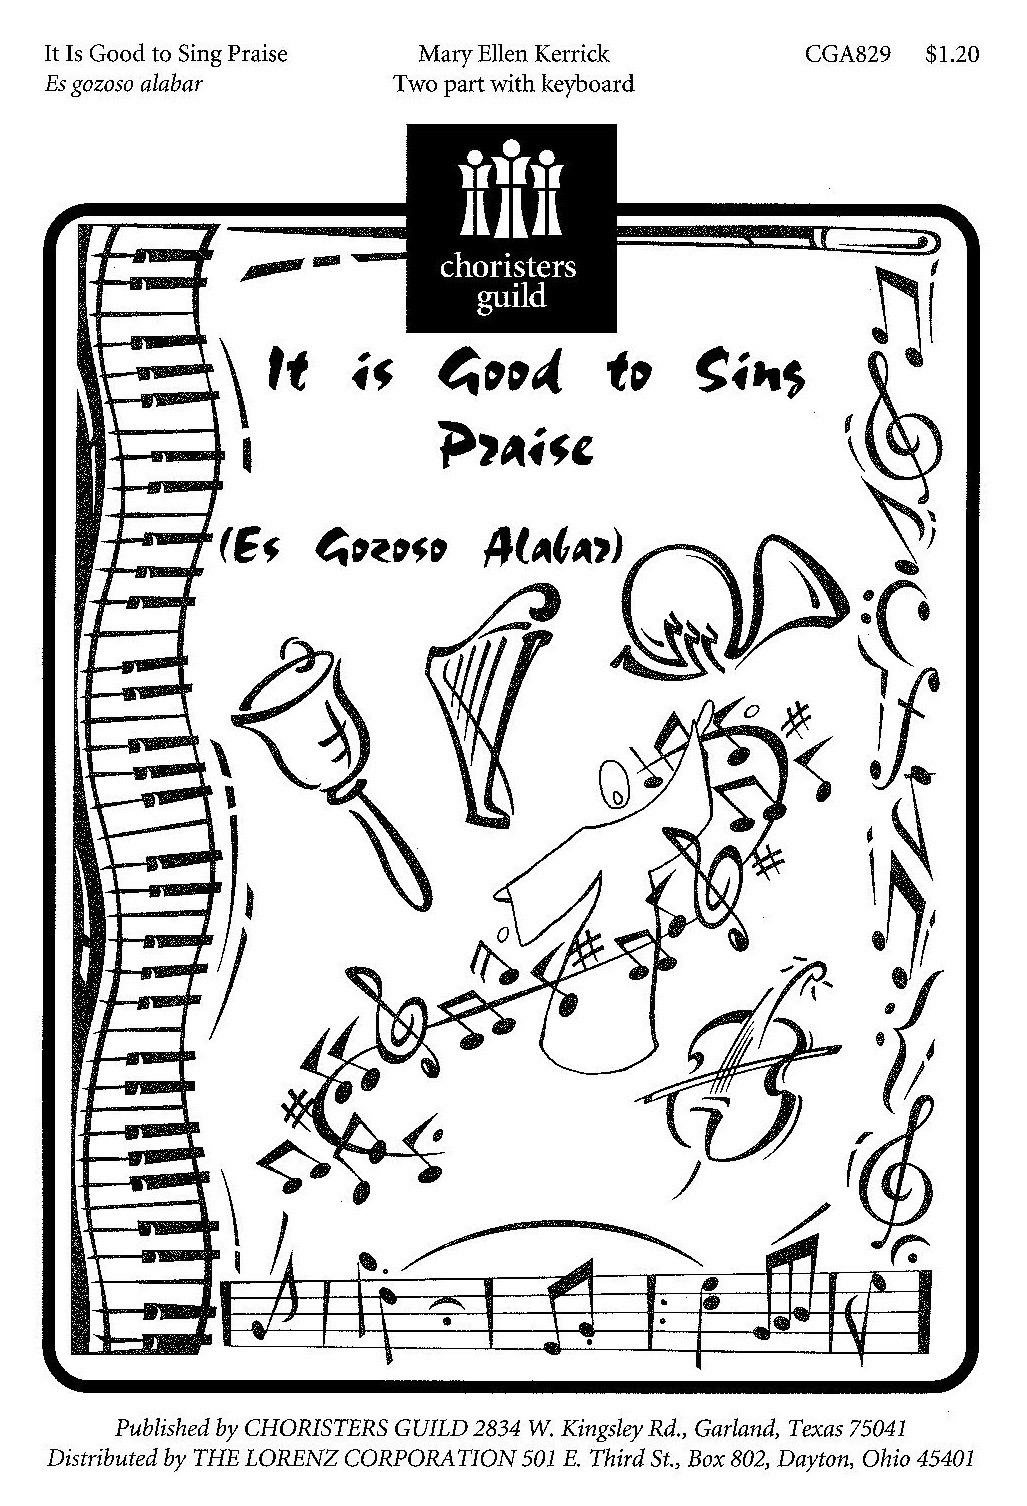 It Is Good to Sing Praise (Es gozoso alabar)